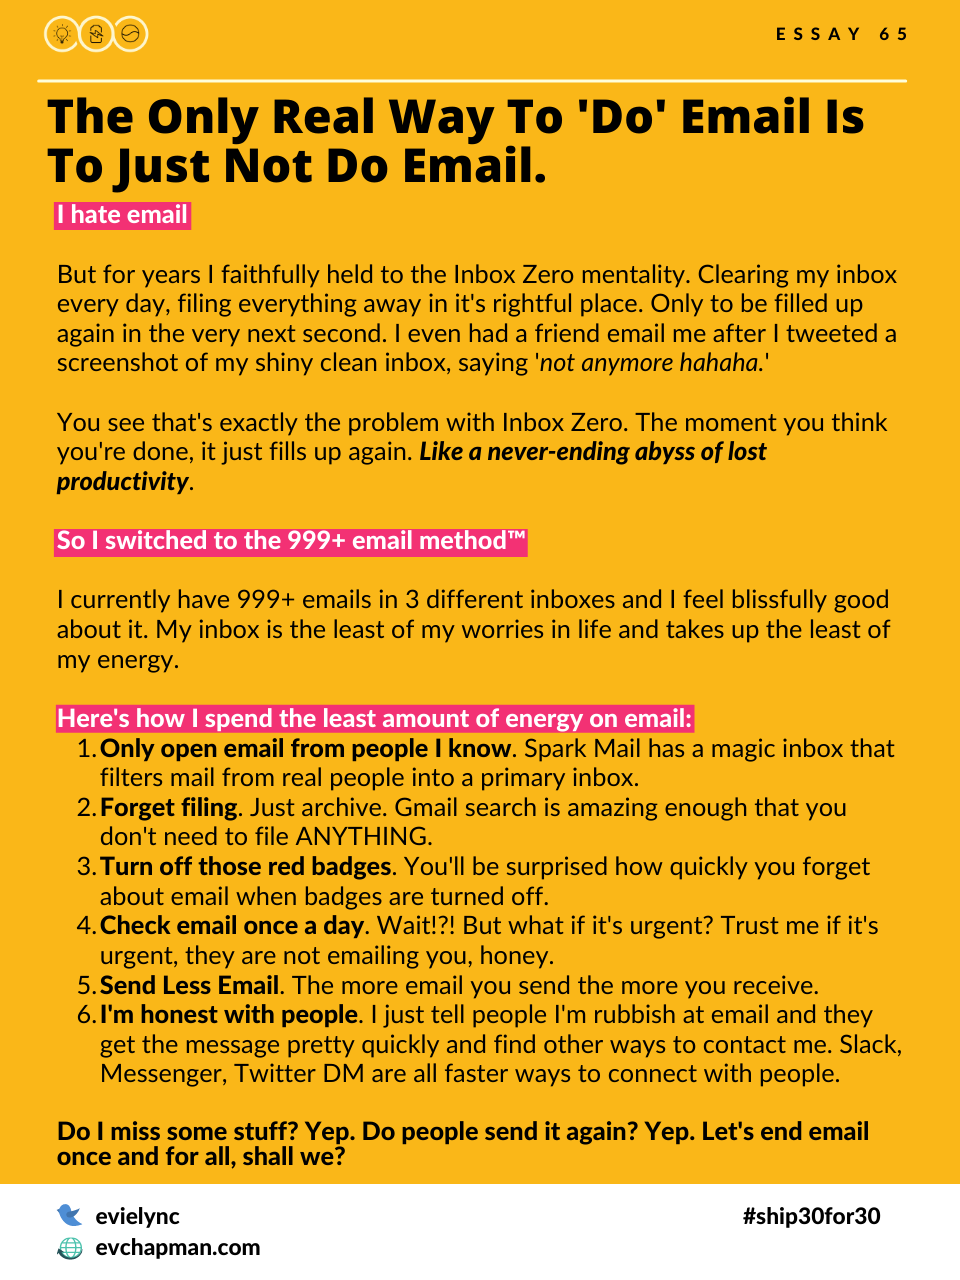 The Only Real Way To 'DO' Email Is To Just Not Do Email